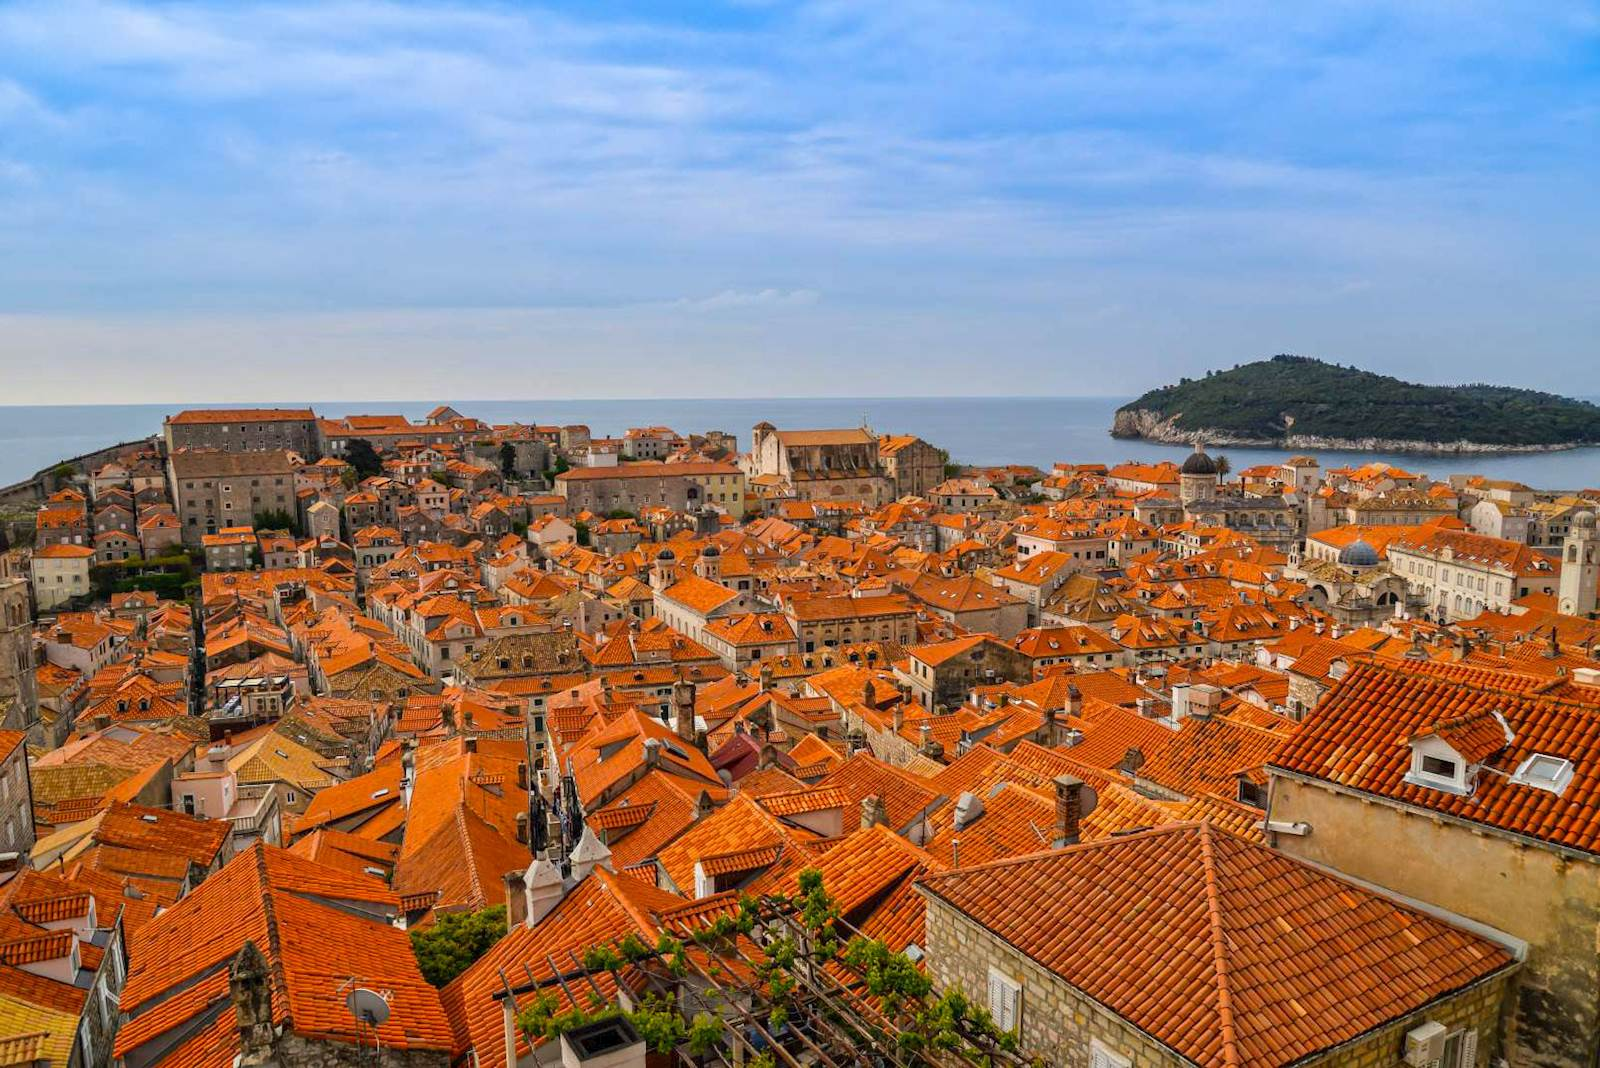 -images-excursions-discover-dubrovnik--10-dubrovnik-old-town-view-from-north-side-of-walls-2.jpg